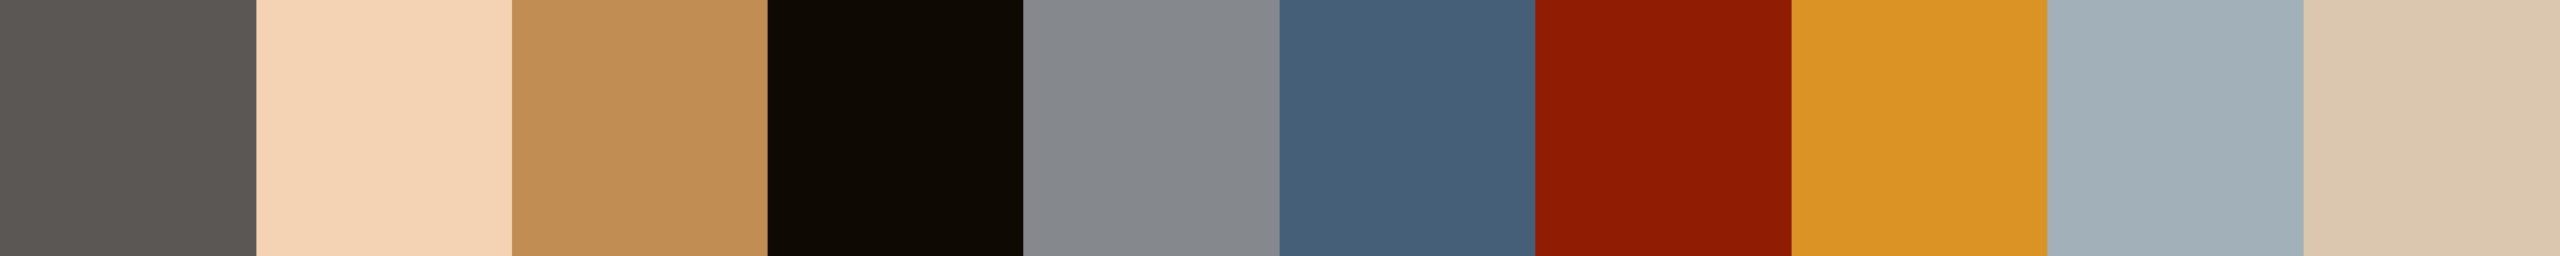 342 Collosea Color Palette